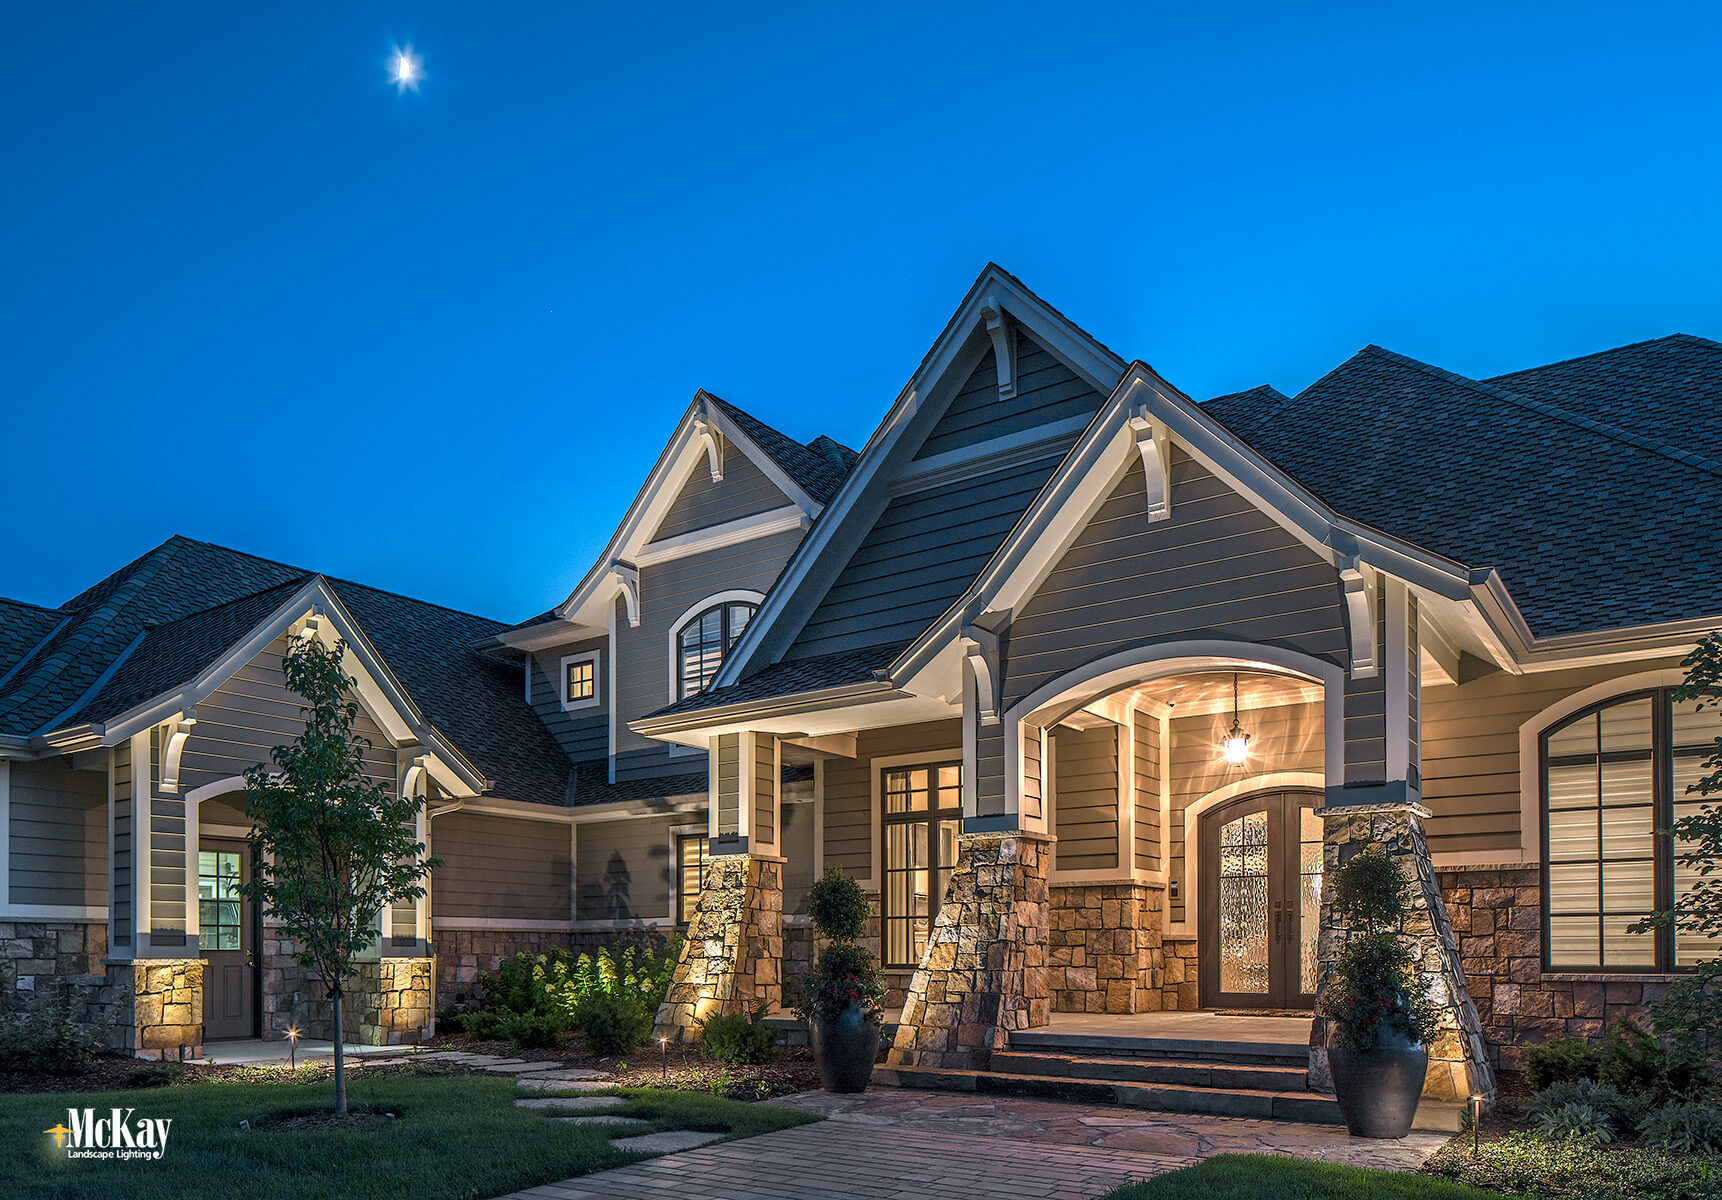 The home's lovely natural stone and decorative corbel peaks are just some of its timeless characteristics that we wanted to highlight at night. Click to learn more about the outdoor lighting design... | McKay Landscape Lighting - Omaha, Nebraska